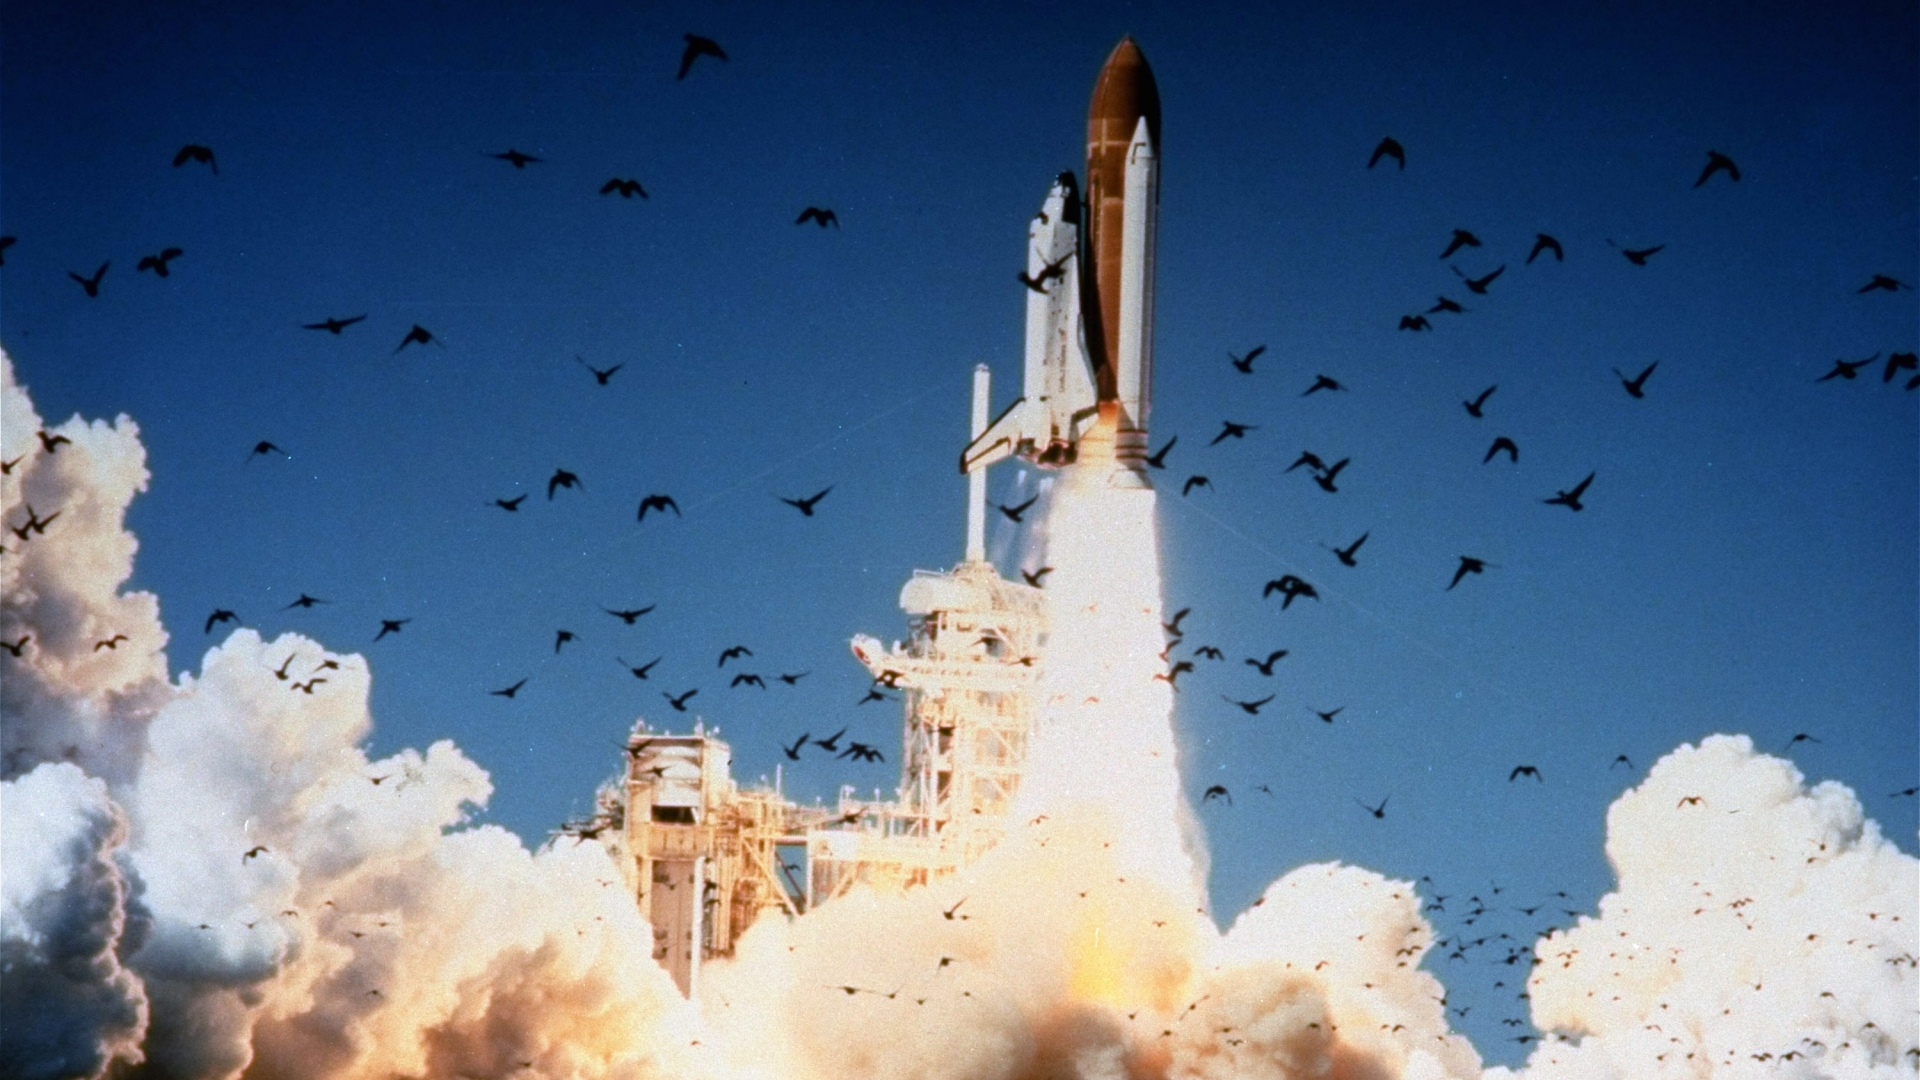 space shuttle challenger significance - photo #5